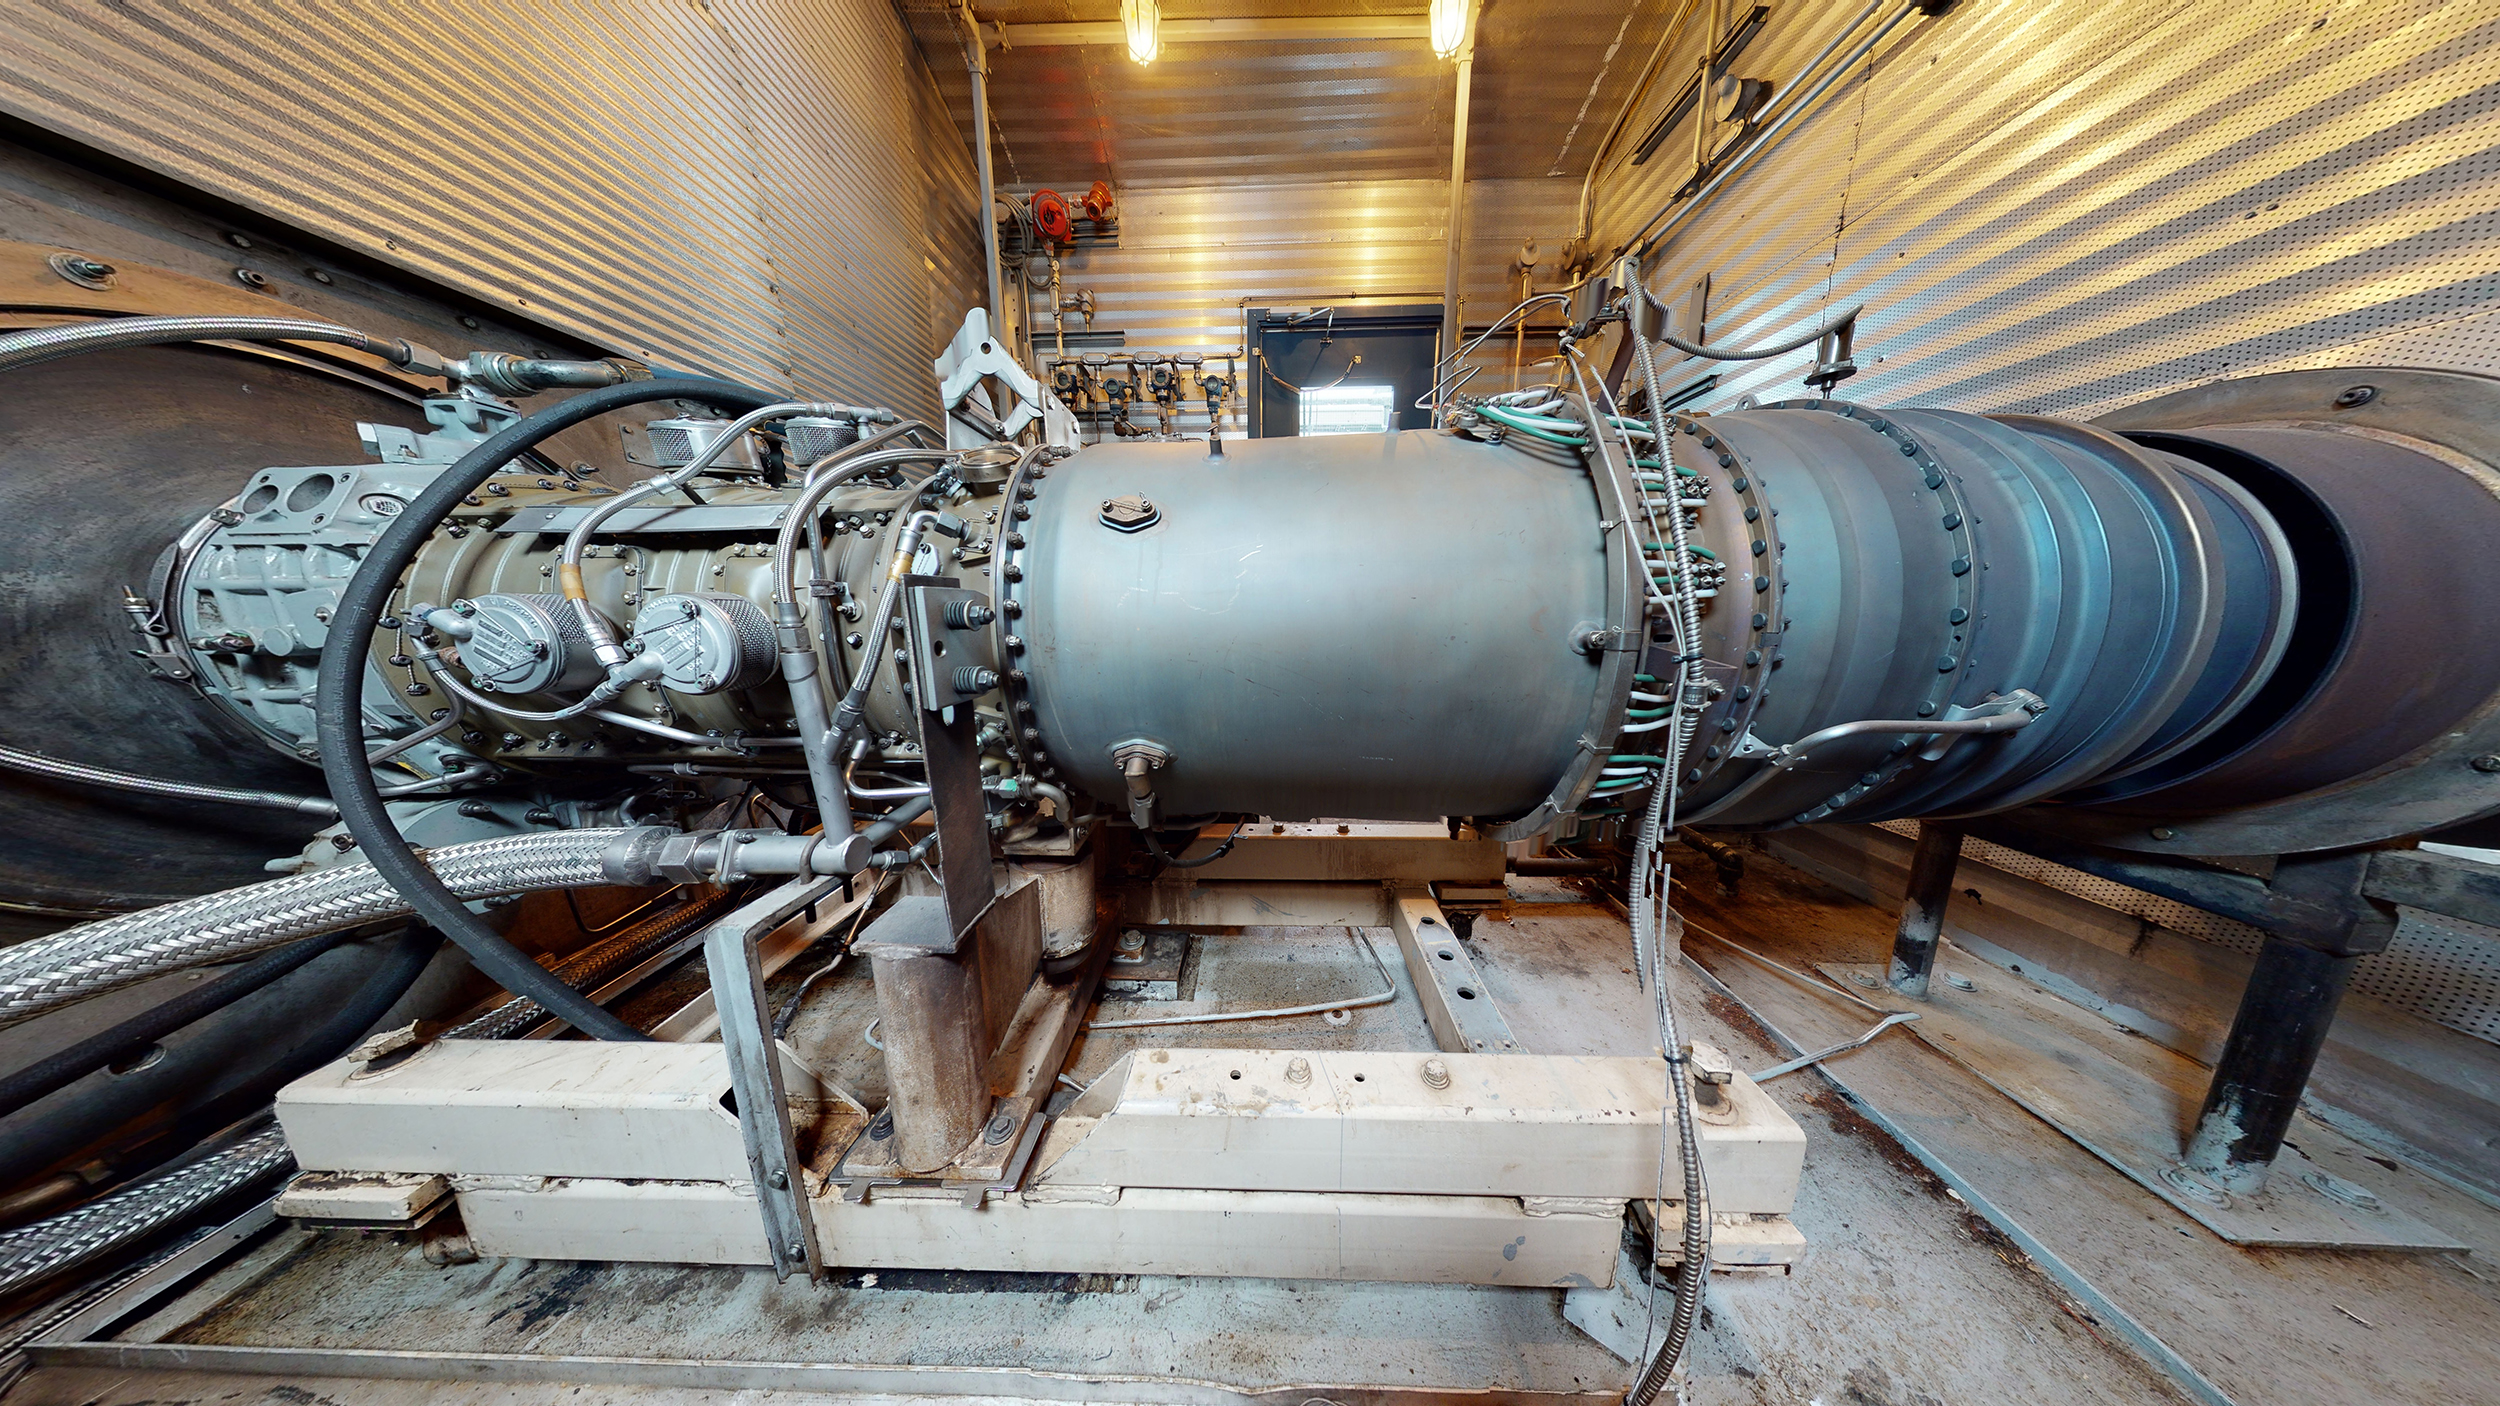 Interior 3 - natural gas turbine - Used 2500 kW / 2 MW Allison Natural Gas Turbine Generator Package for sale in Alberta